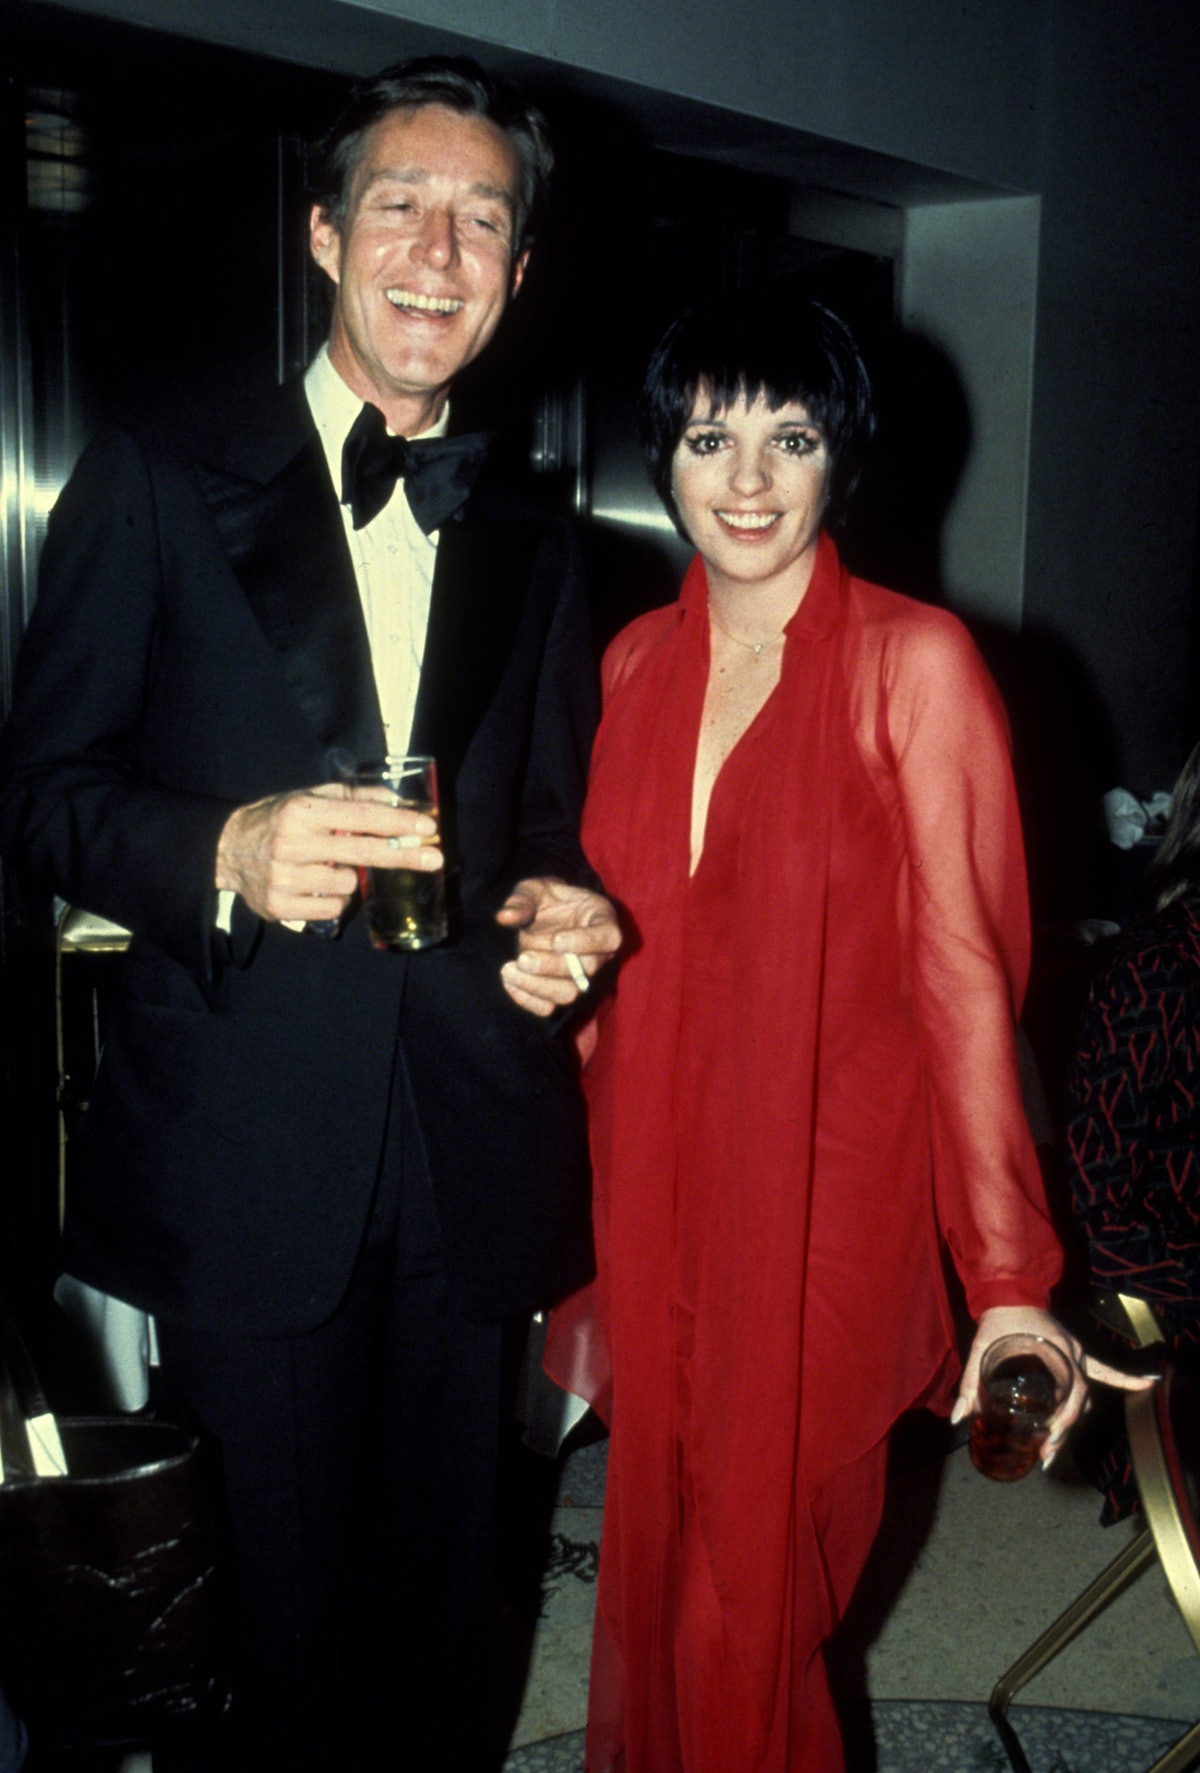 Halston in a black suit, Liza in red gown